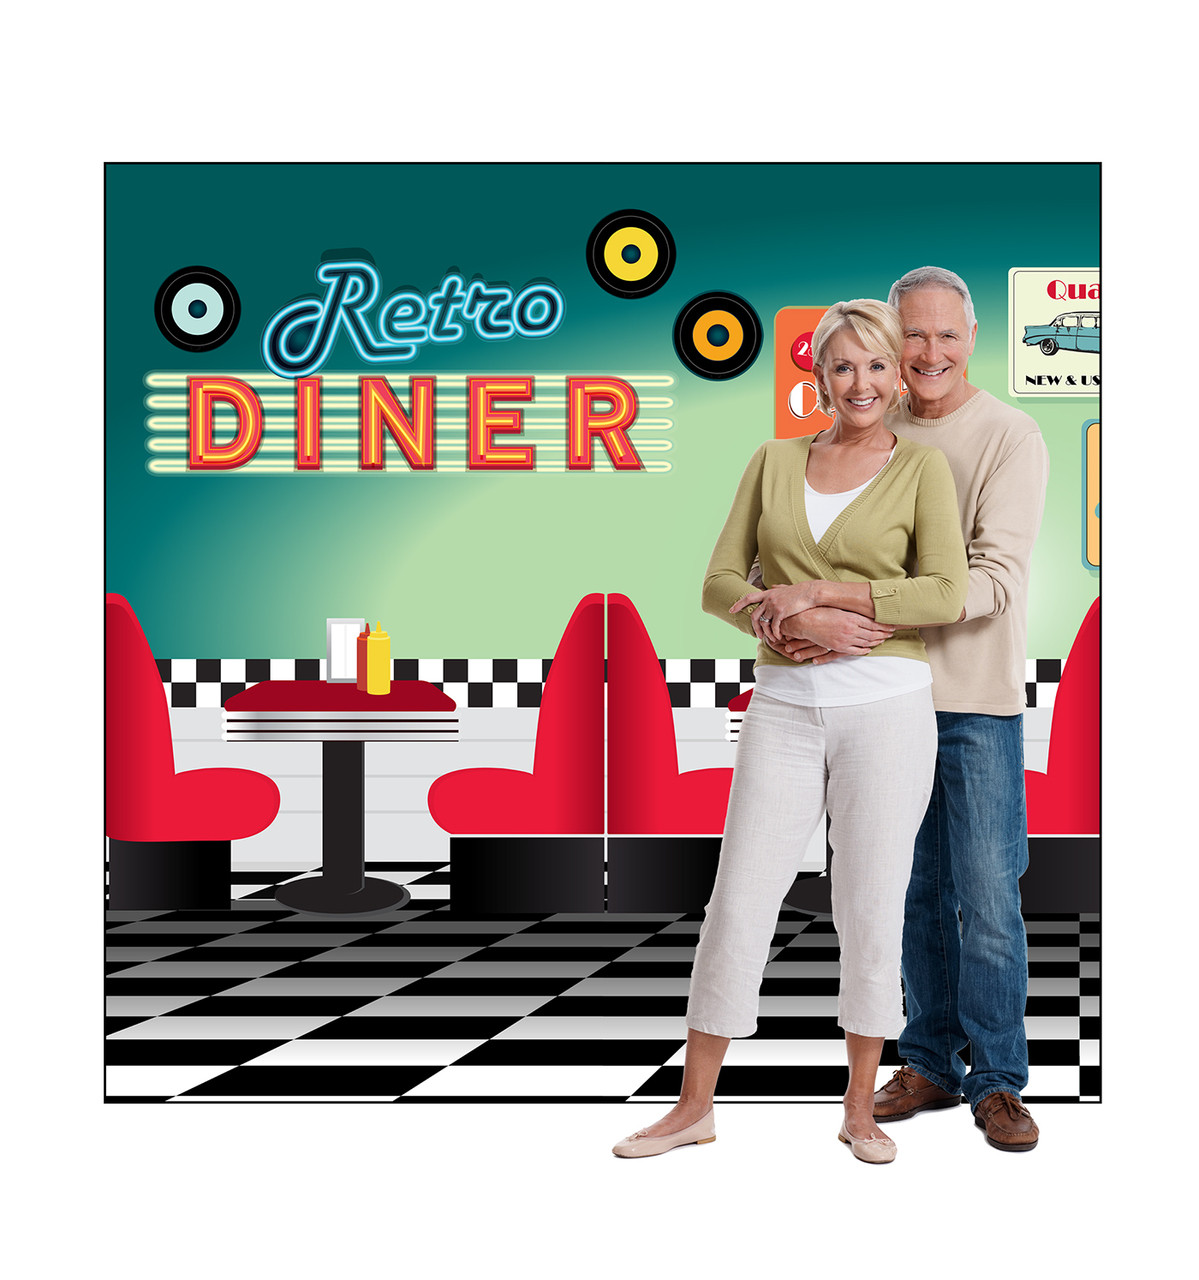 Life-size cardboard standee of a 50's Backdrop double wide with models.